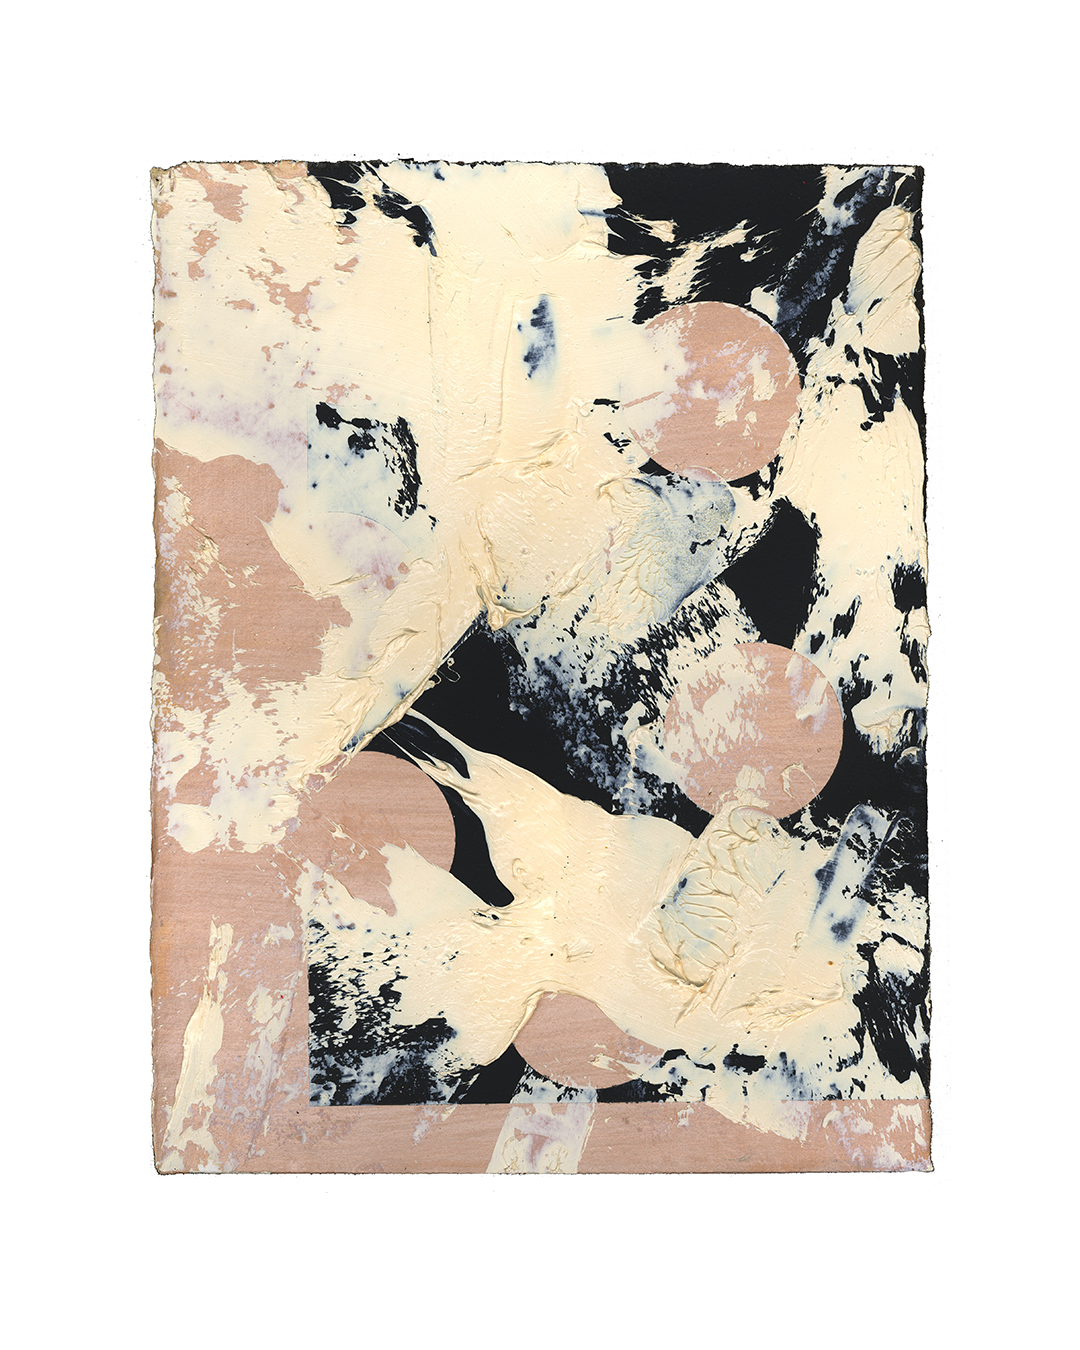 Piet Dieleman, untitled, 2020, painting, oil, tempera paint on paper, 380 x 290 mm, €930